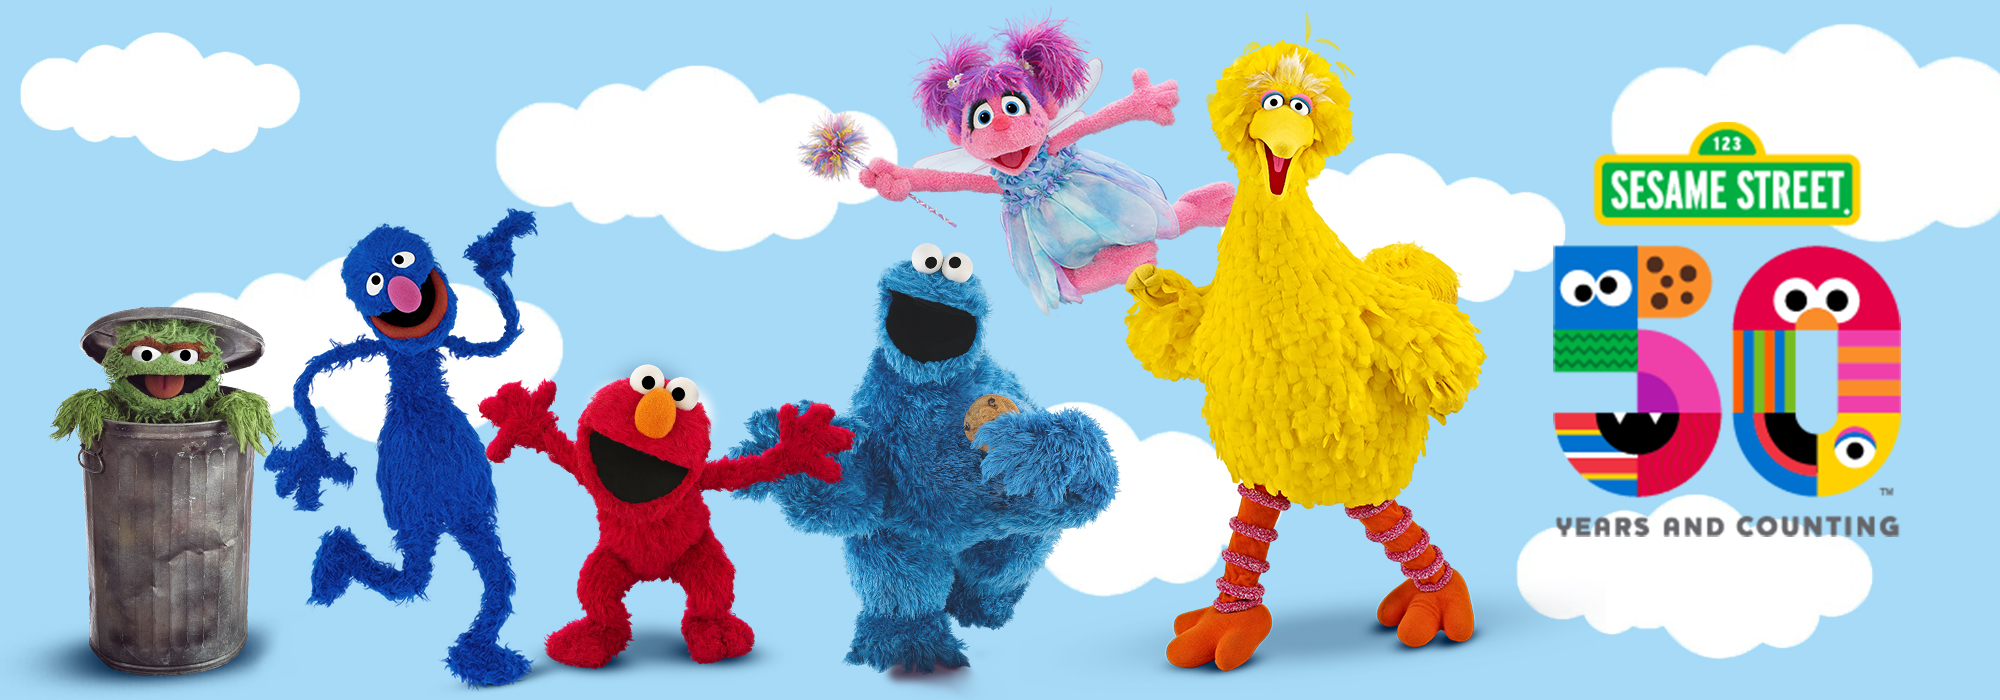 Sesame Street 50th band